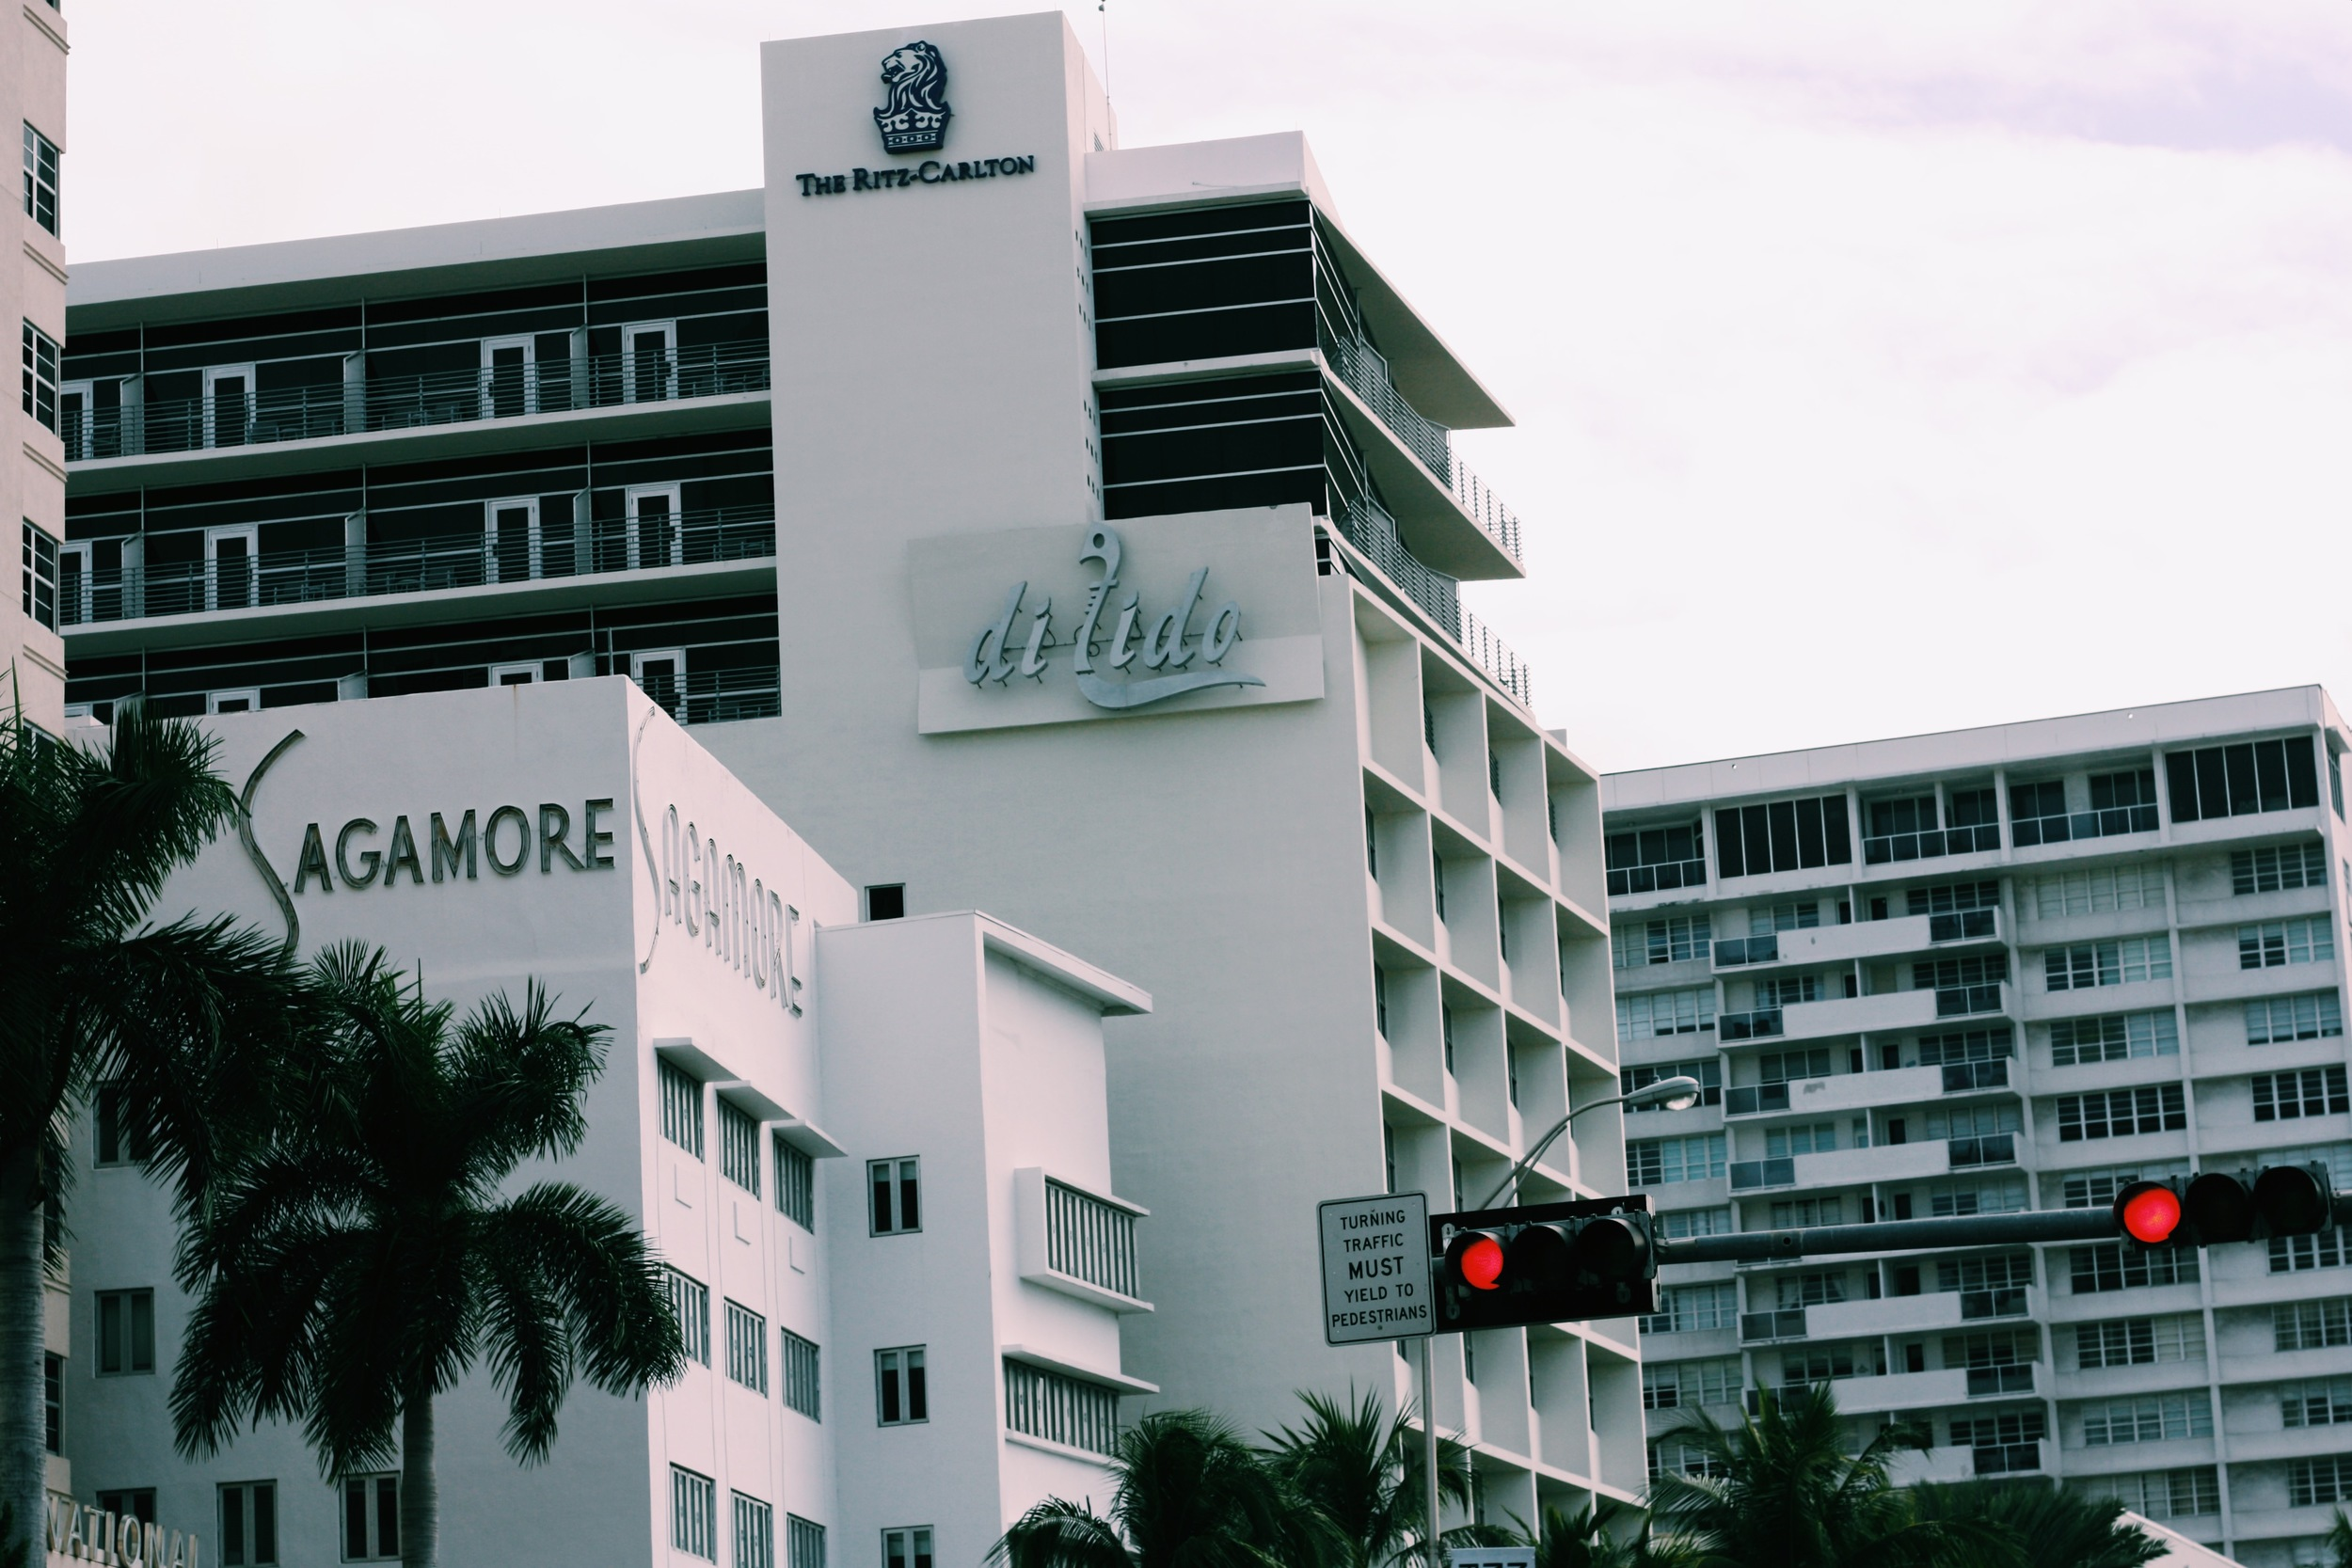 Art deco buildings line up the streets of South Beach, often bearing their names in geometric typefaces and bold colors.